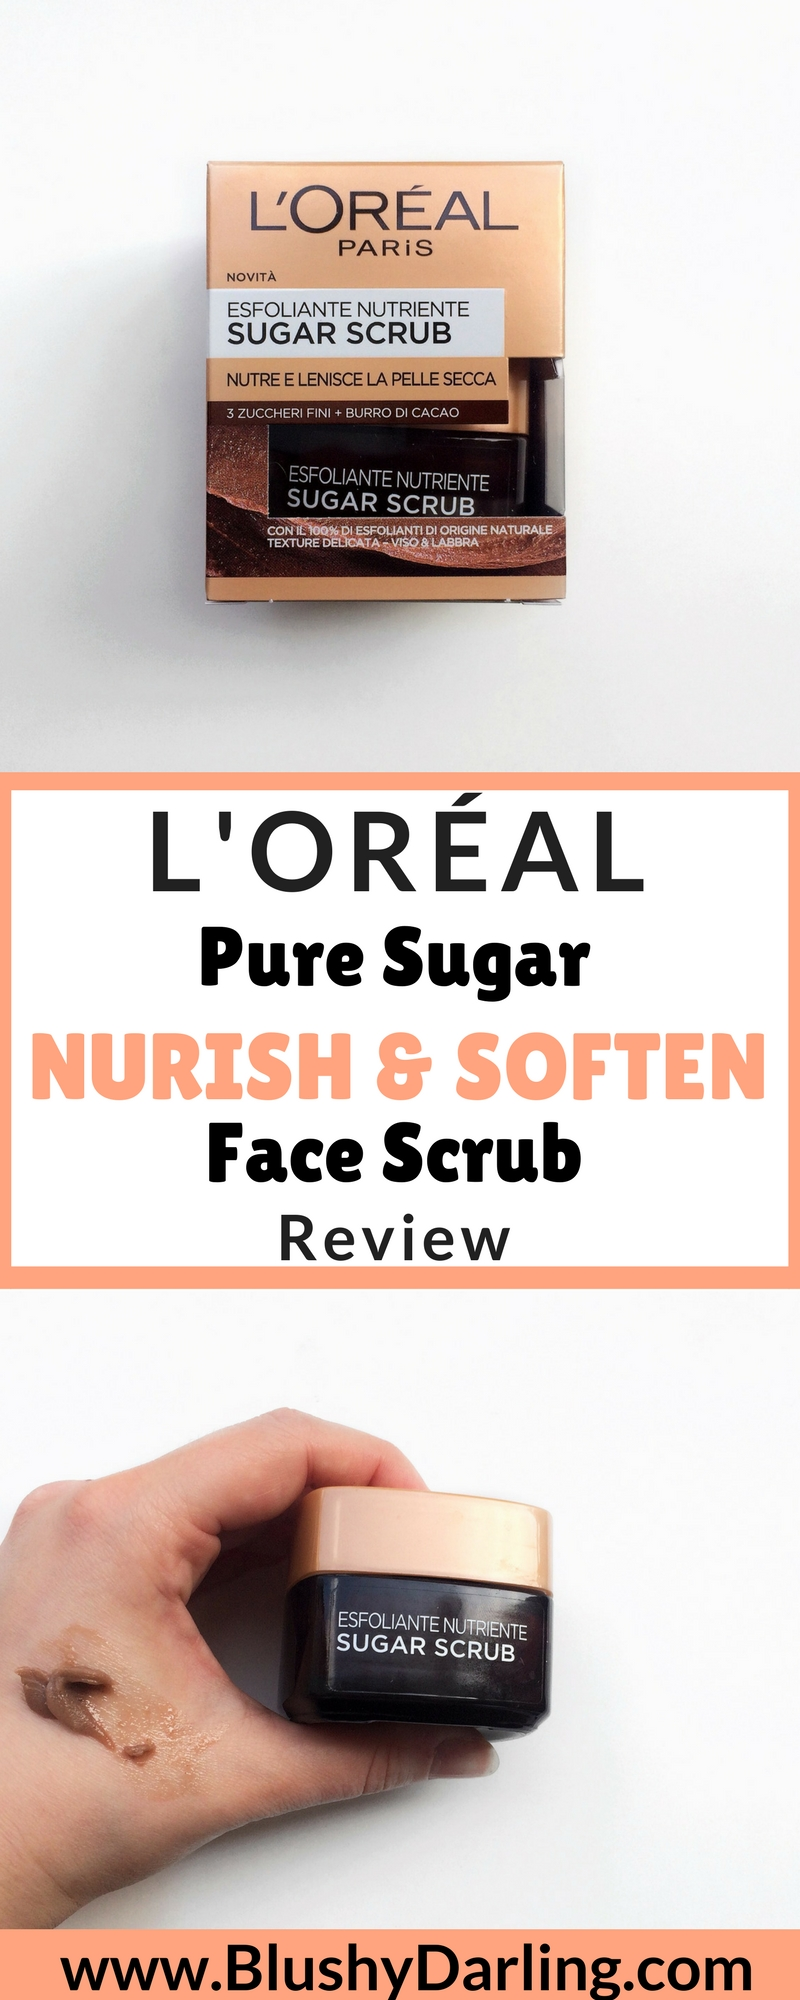 L'Oréal Pure Sugar Nurish & Soften Face Scrub